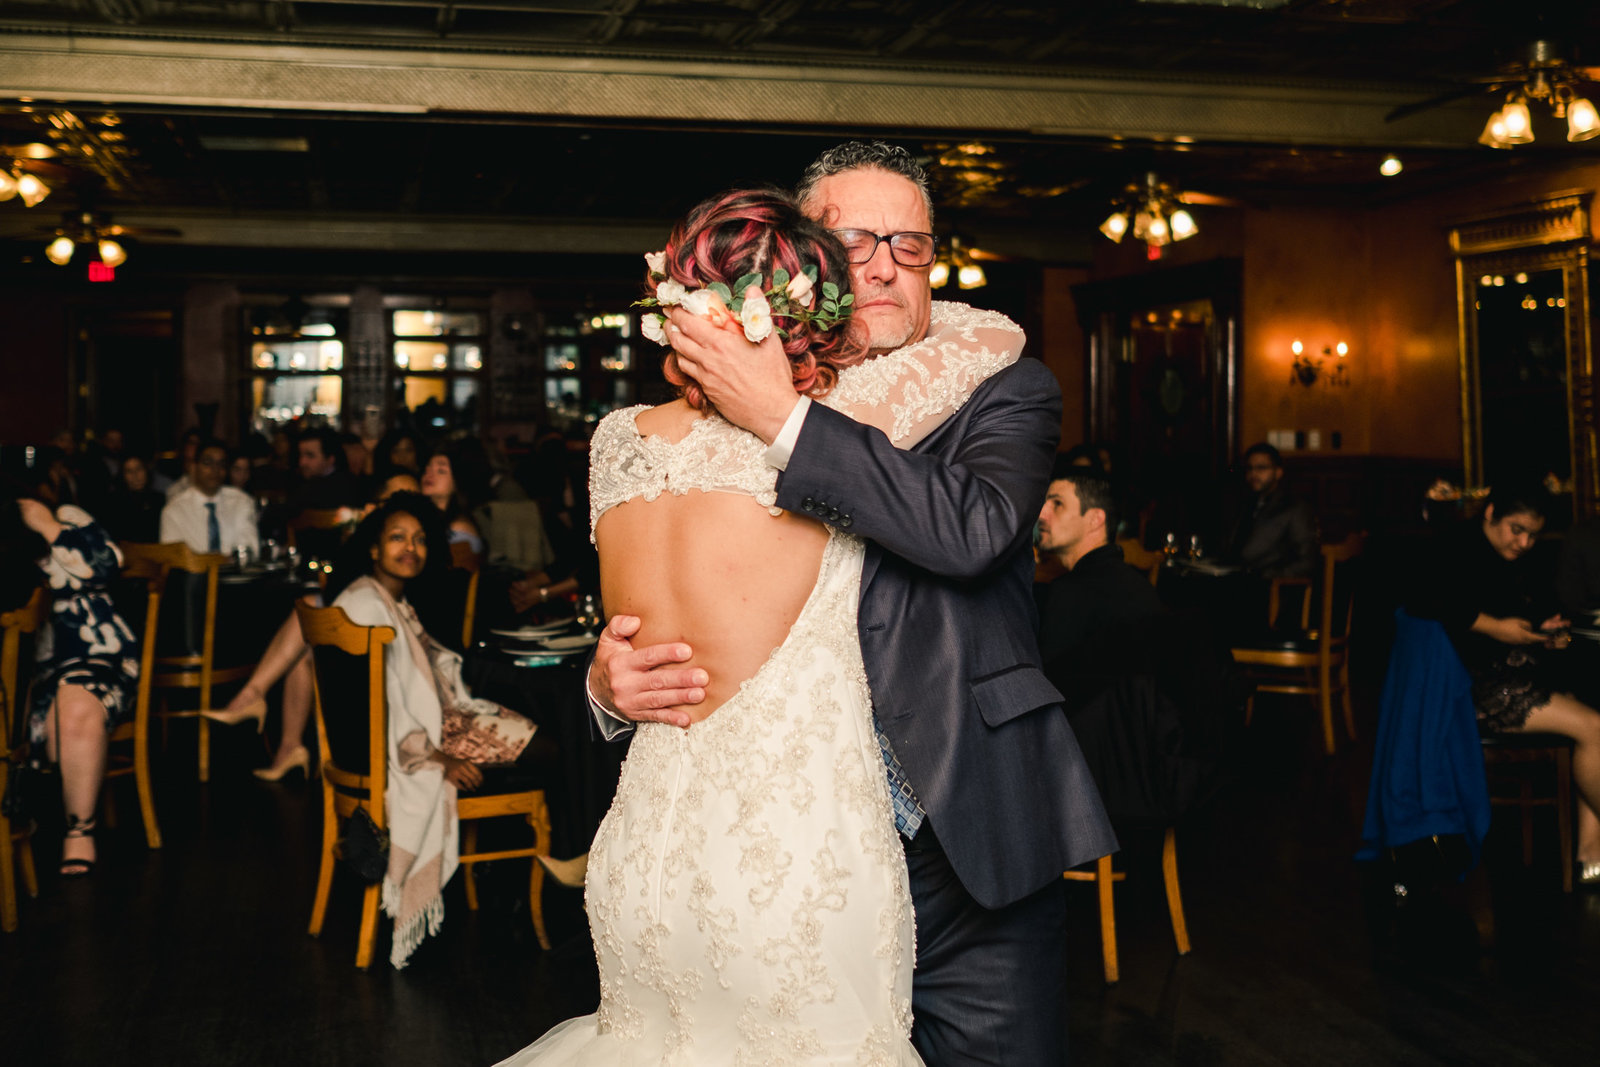 Father of the Bride emotionally embraces bride during the father daughter dance